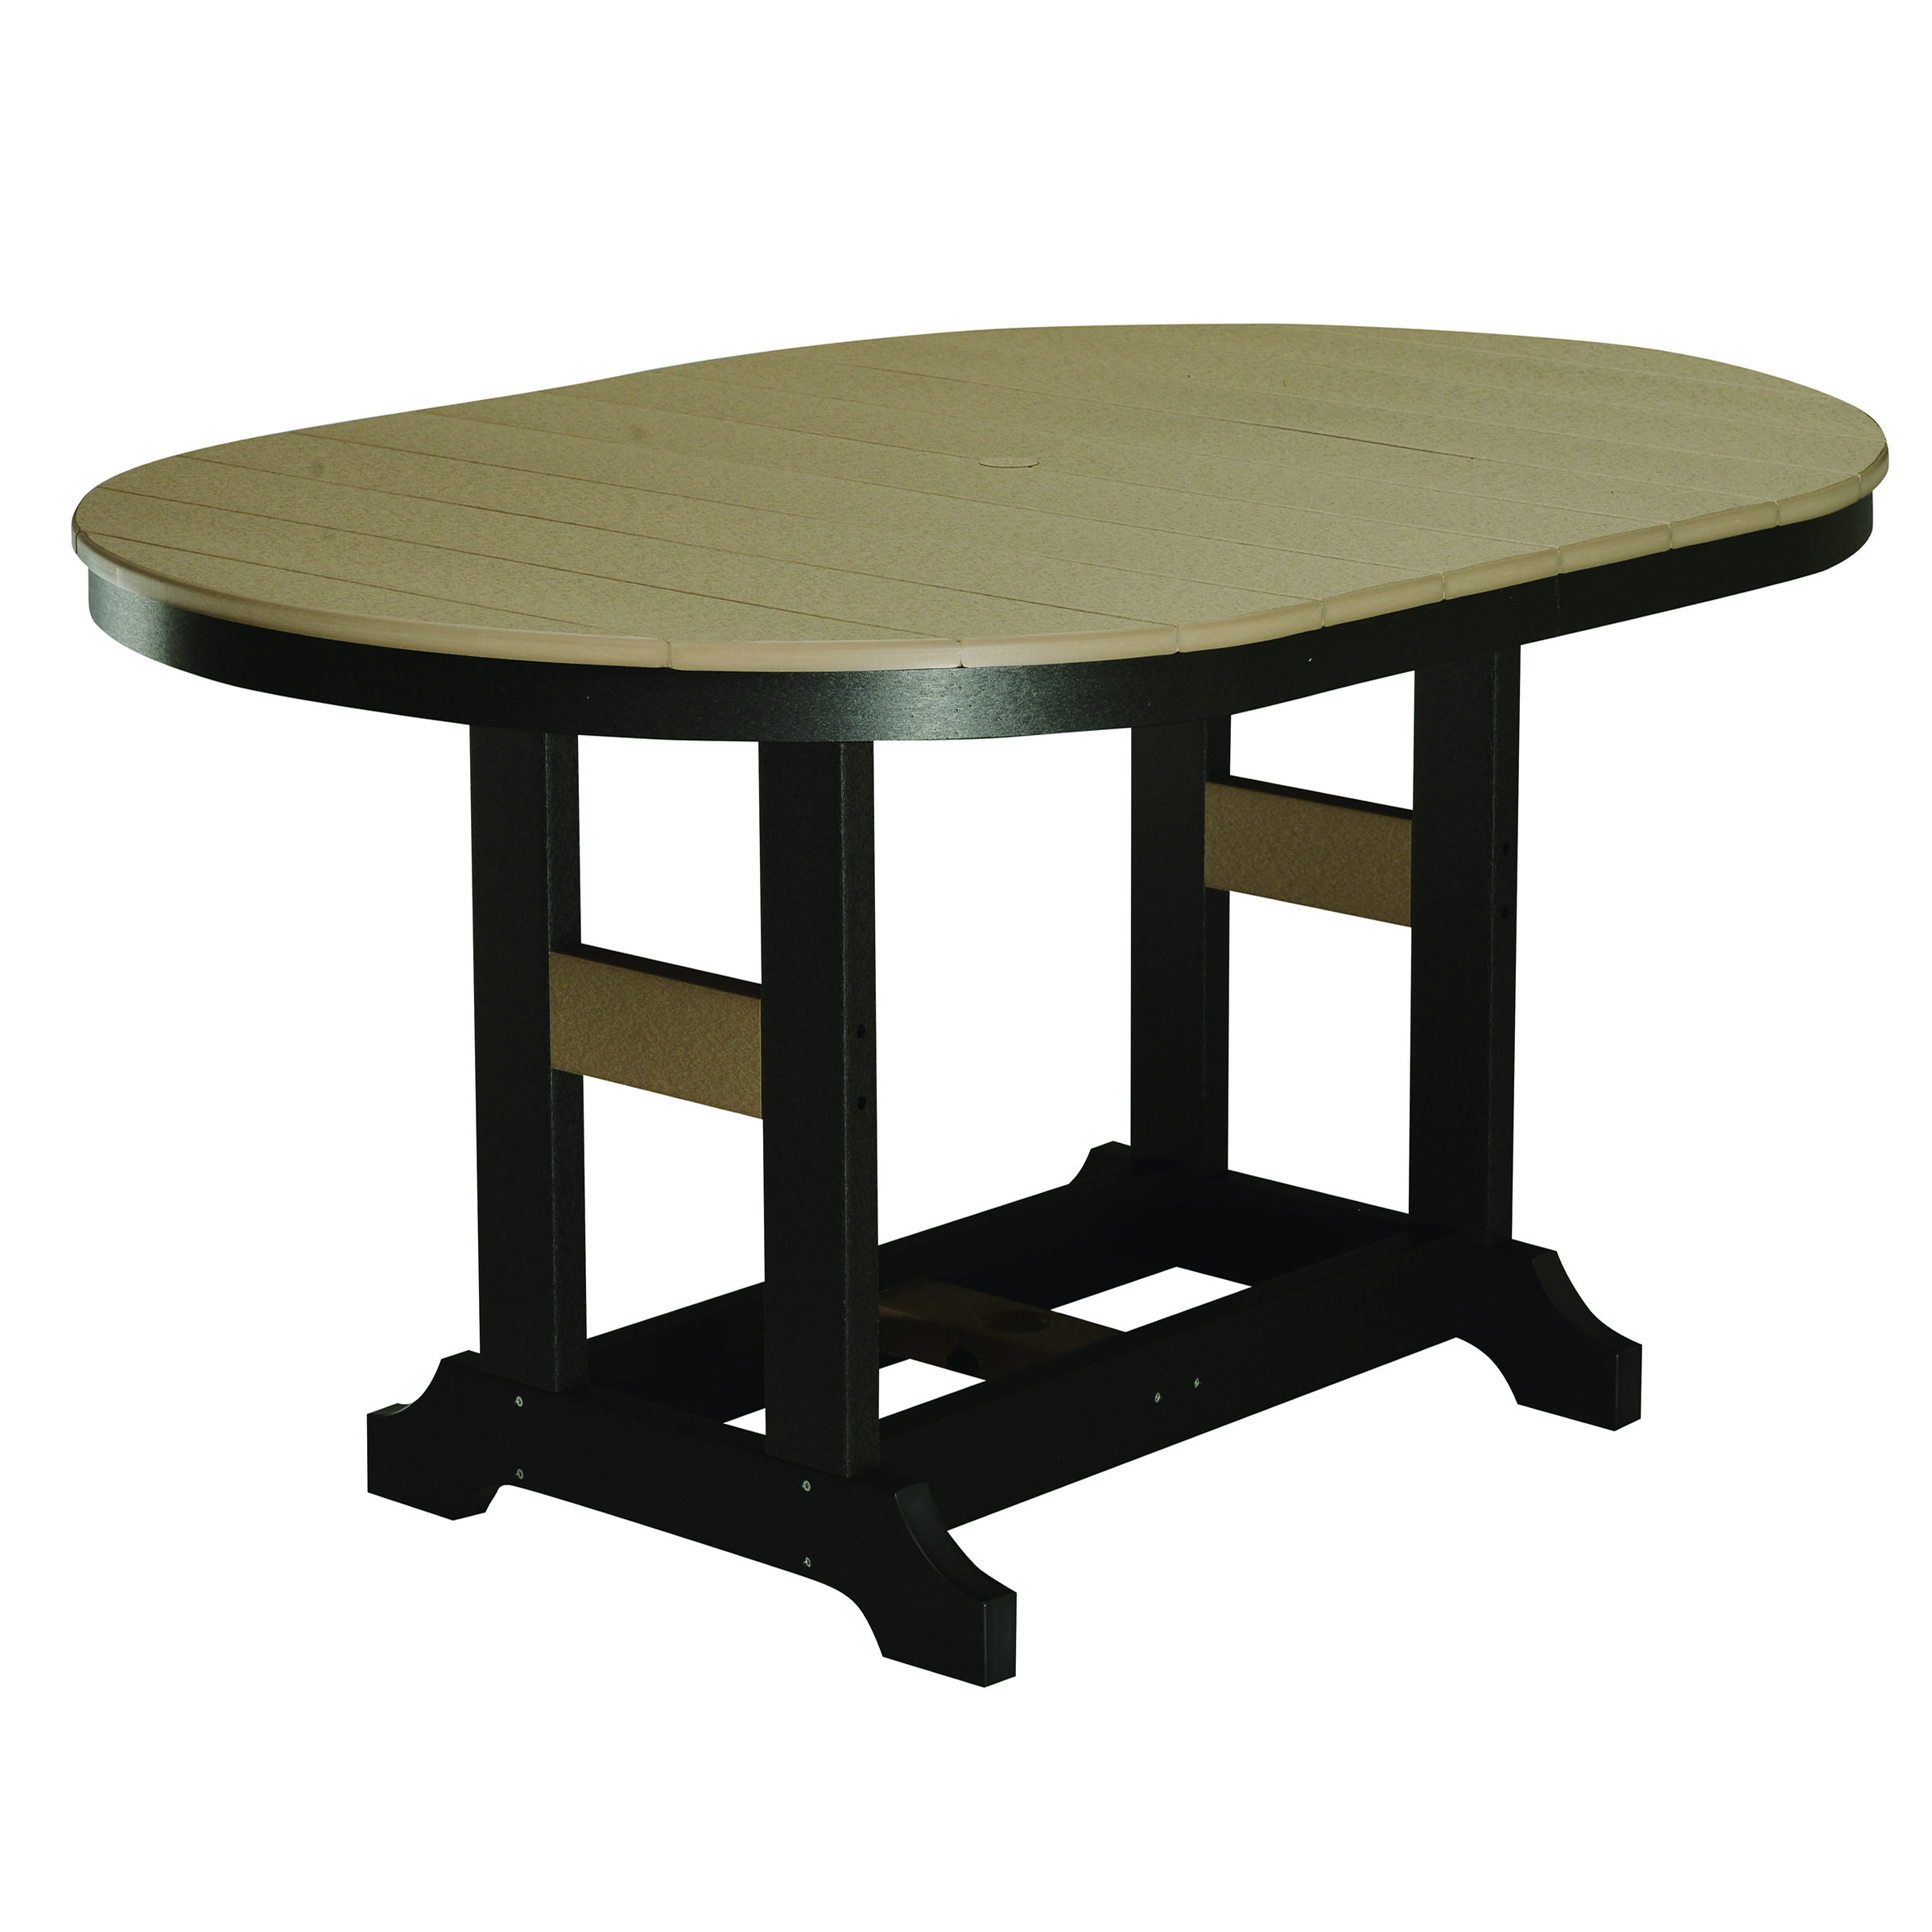 Garden Classic 44 x 64 in Oval Counter Table